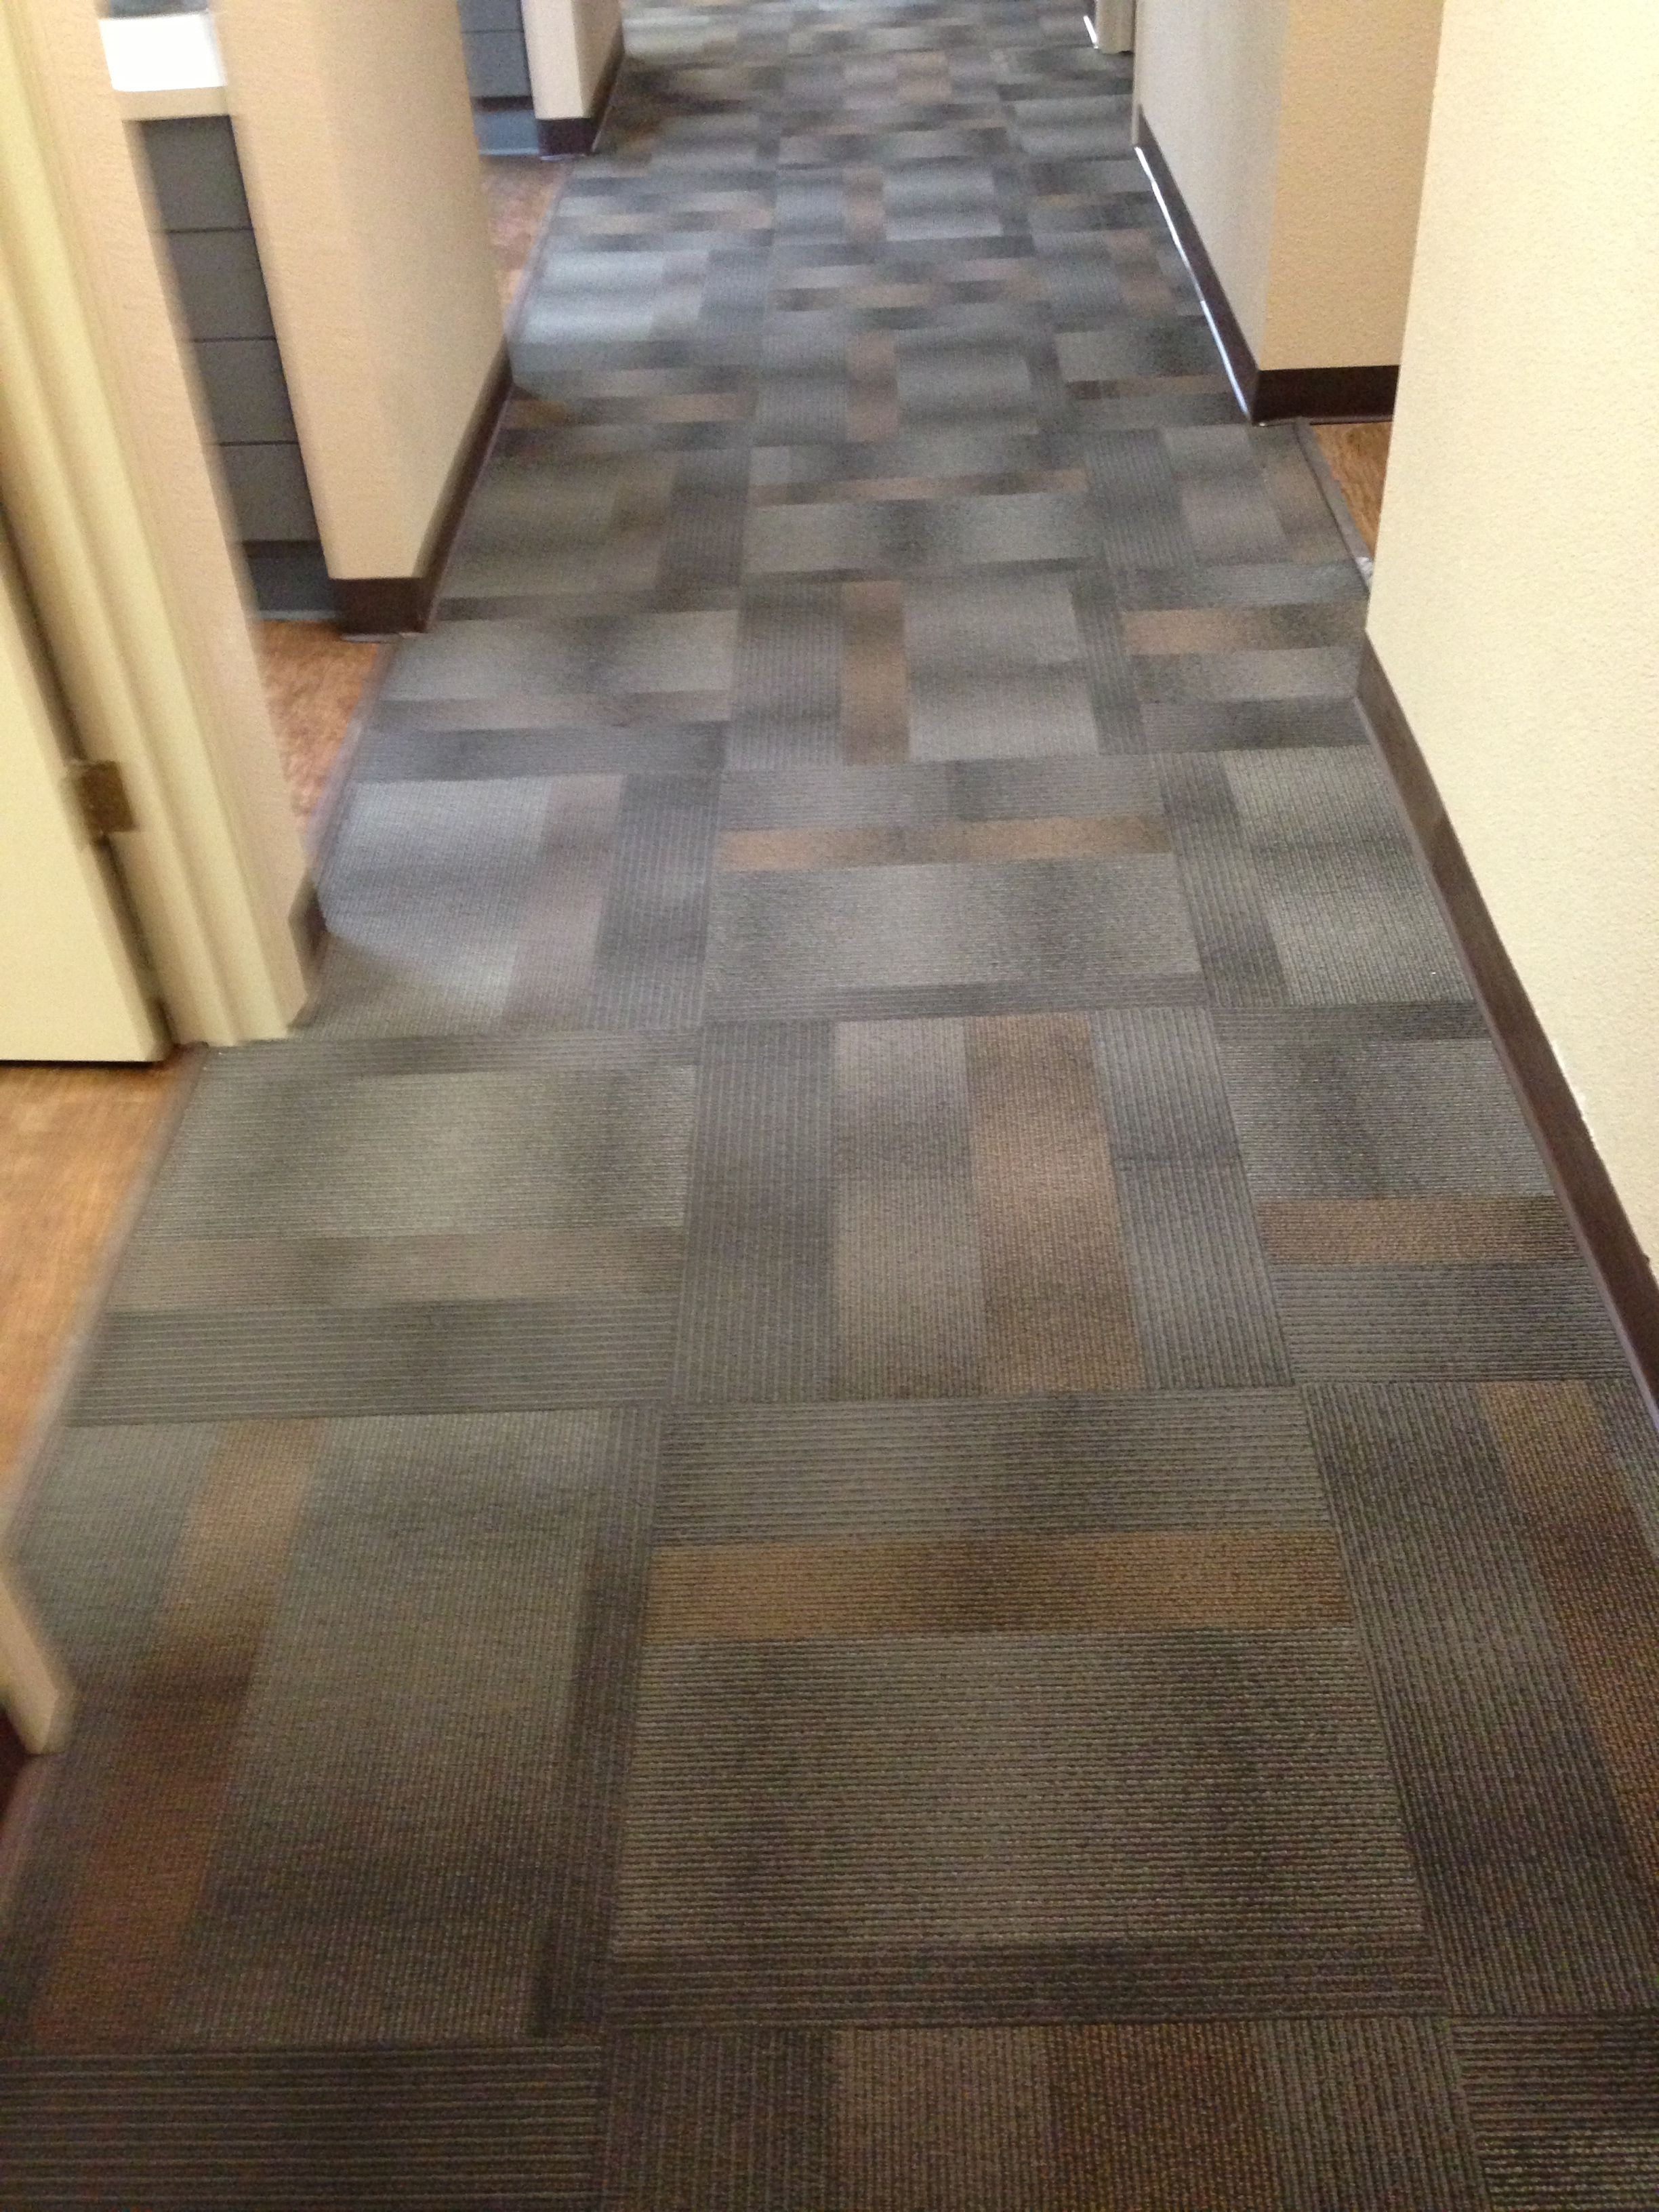 SHAW Eco-Works Sustainable Recyclable carpet tiles.